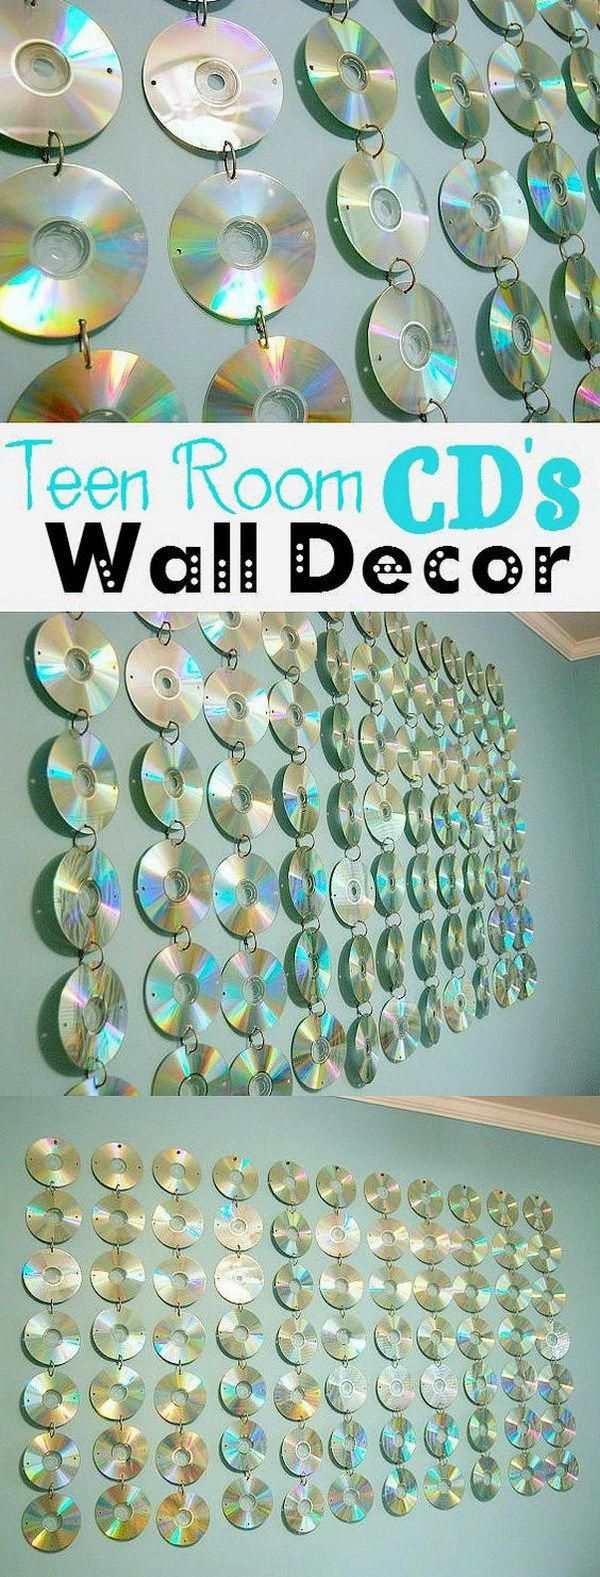 Brilliant DIY Ideas To Recycle Old CDs images